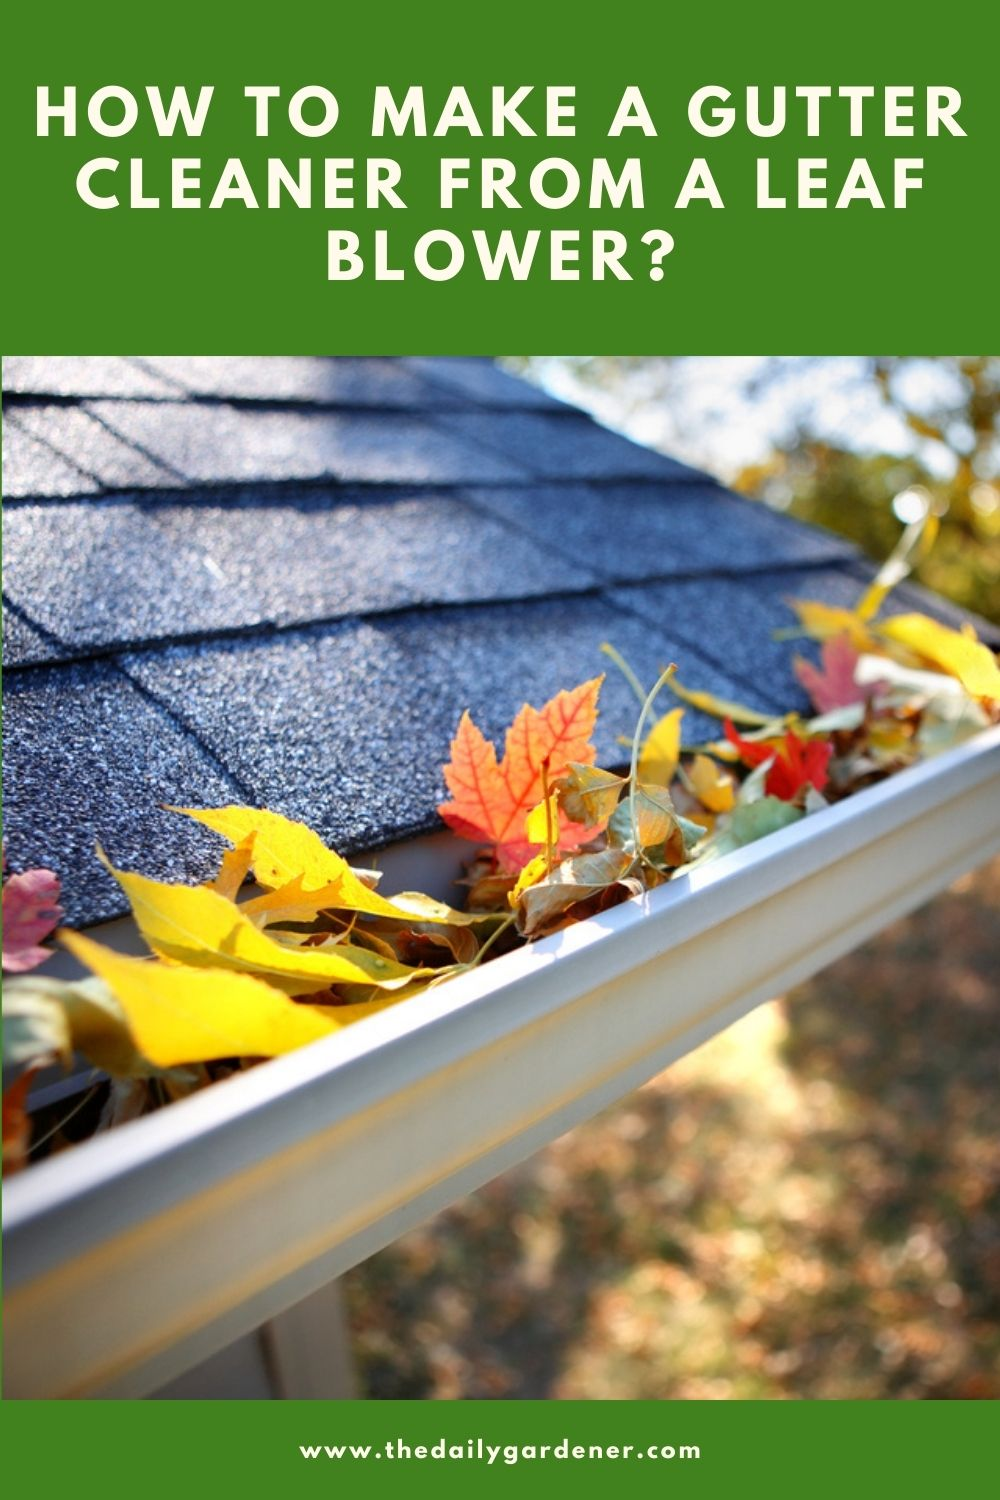 How to Make a Gutter Cleaner from a Leaf Blower 2